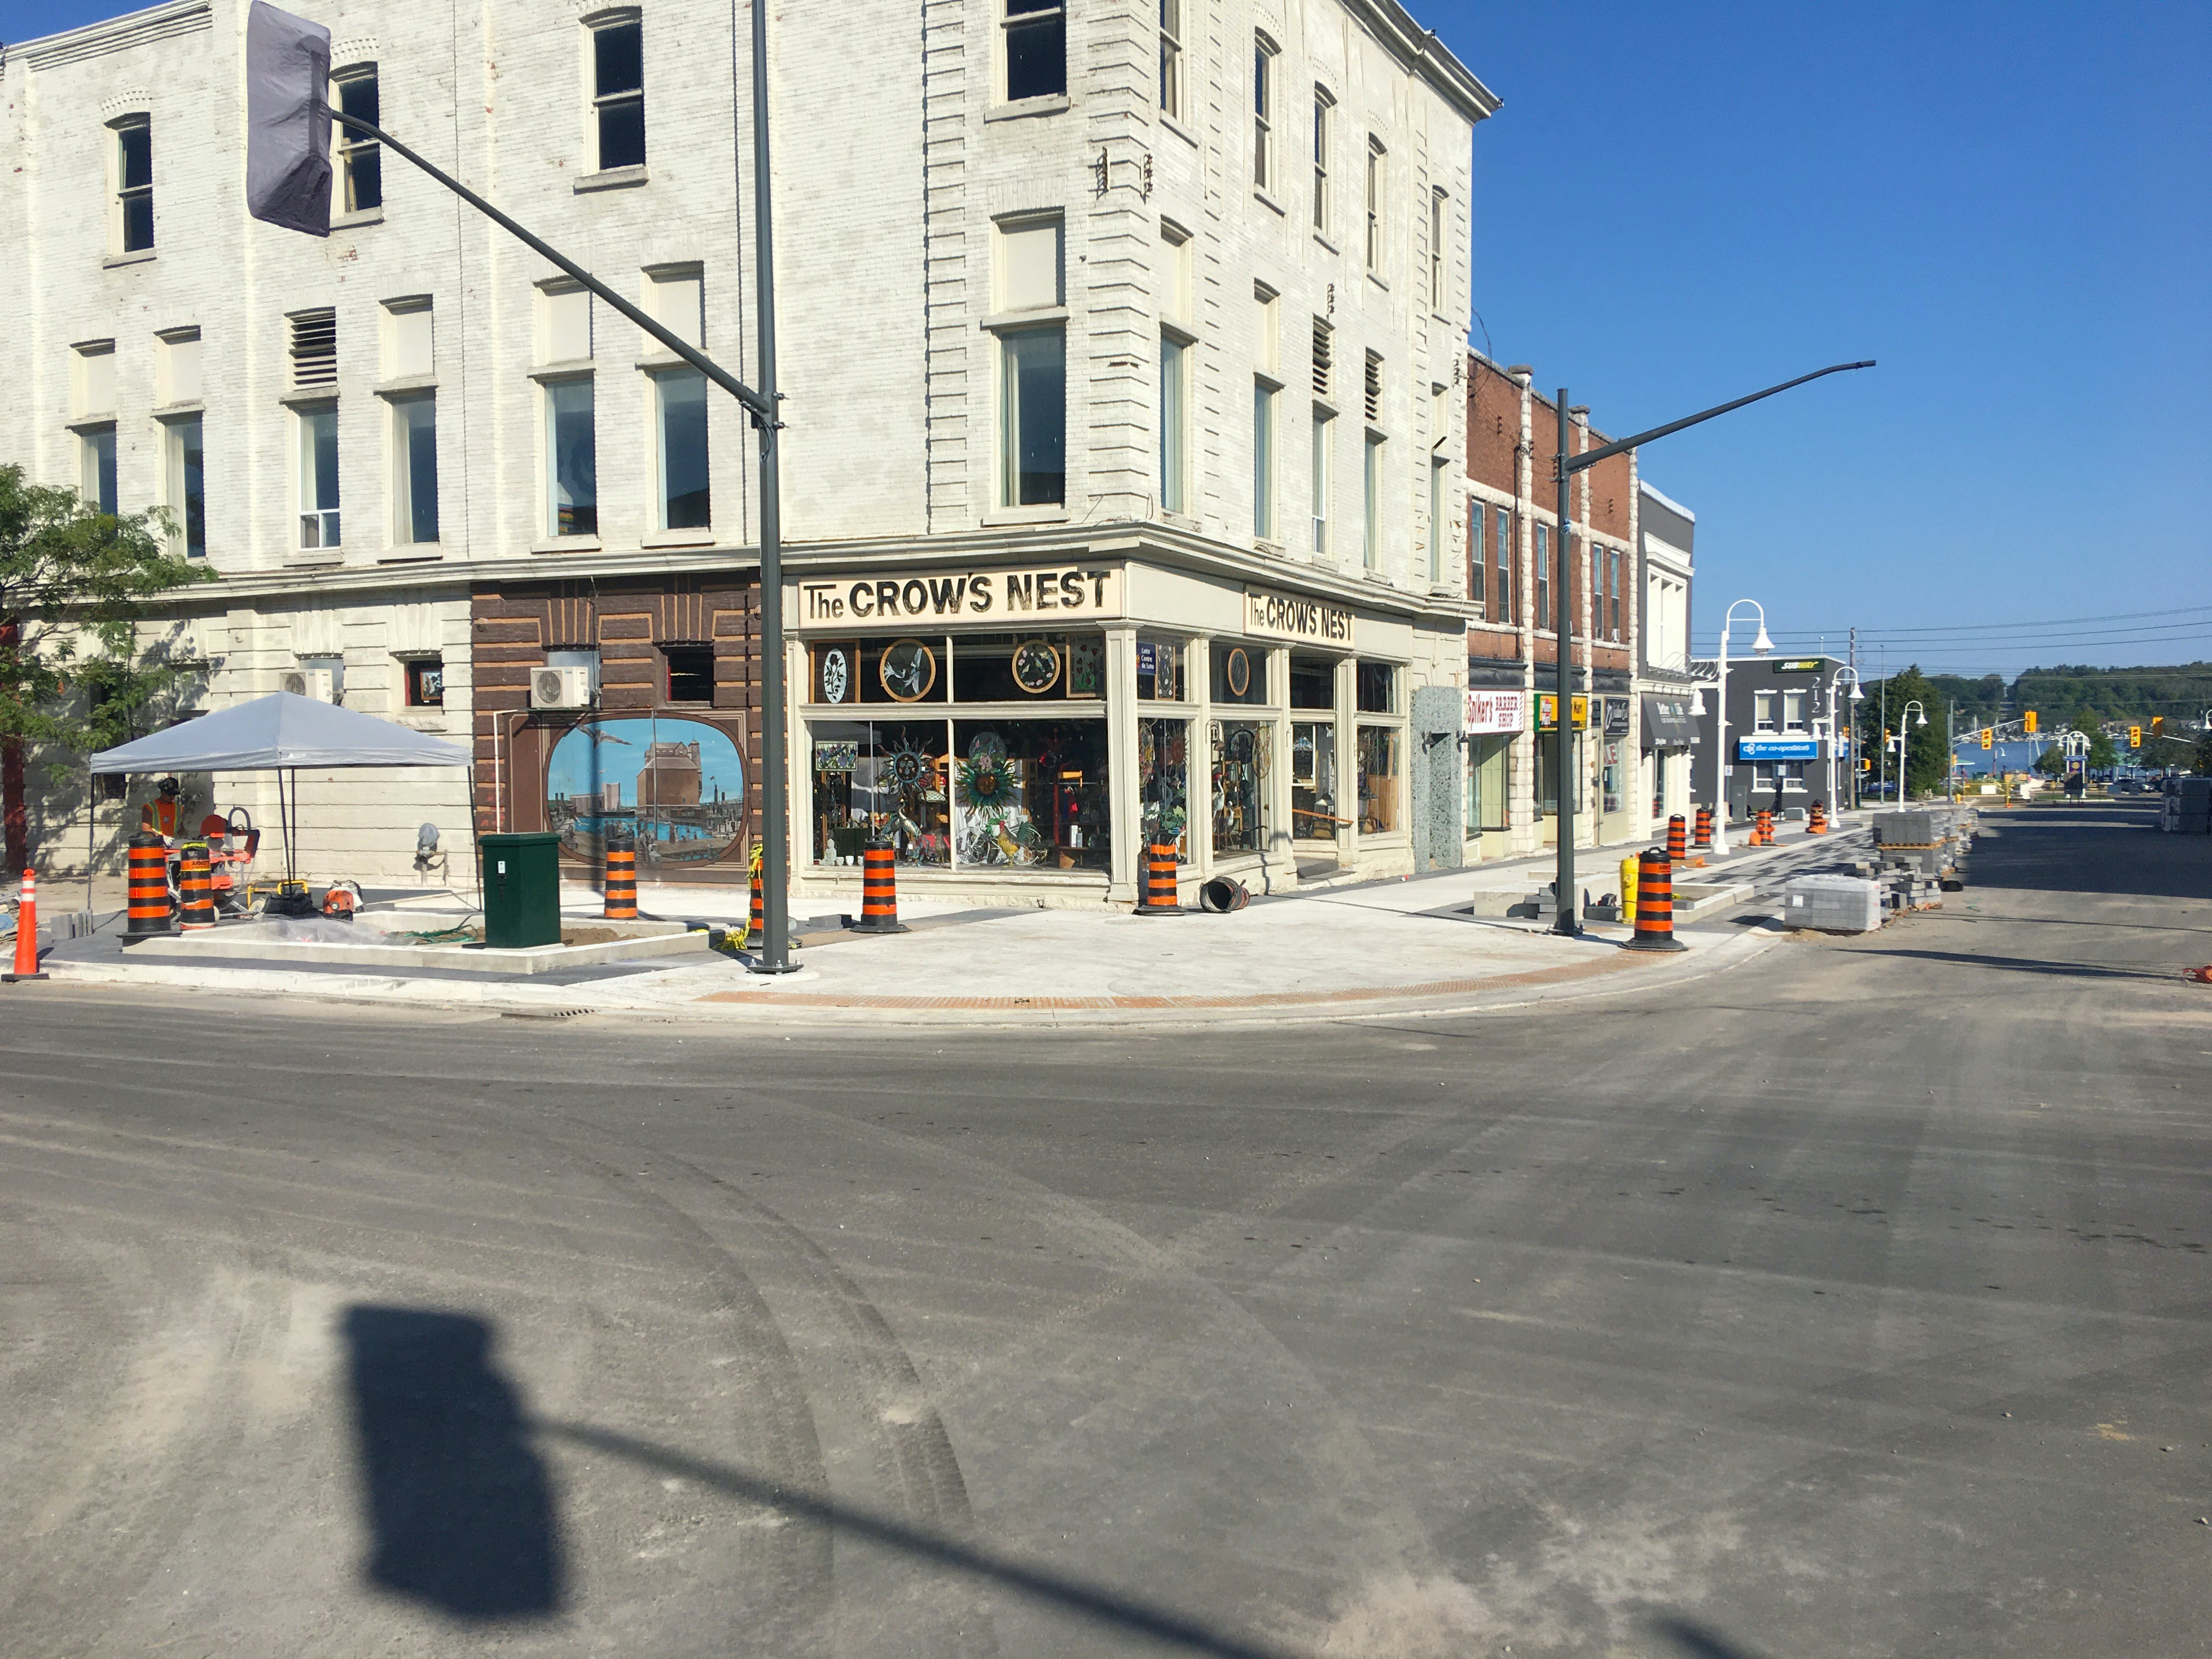 New signalized intersection at King Street & Dominion Avenue